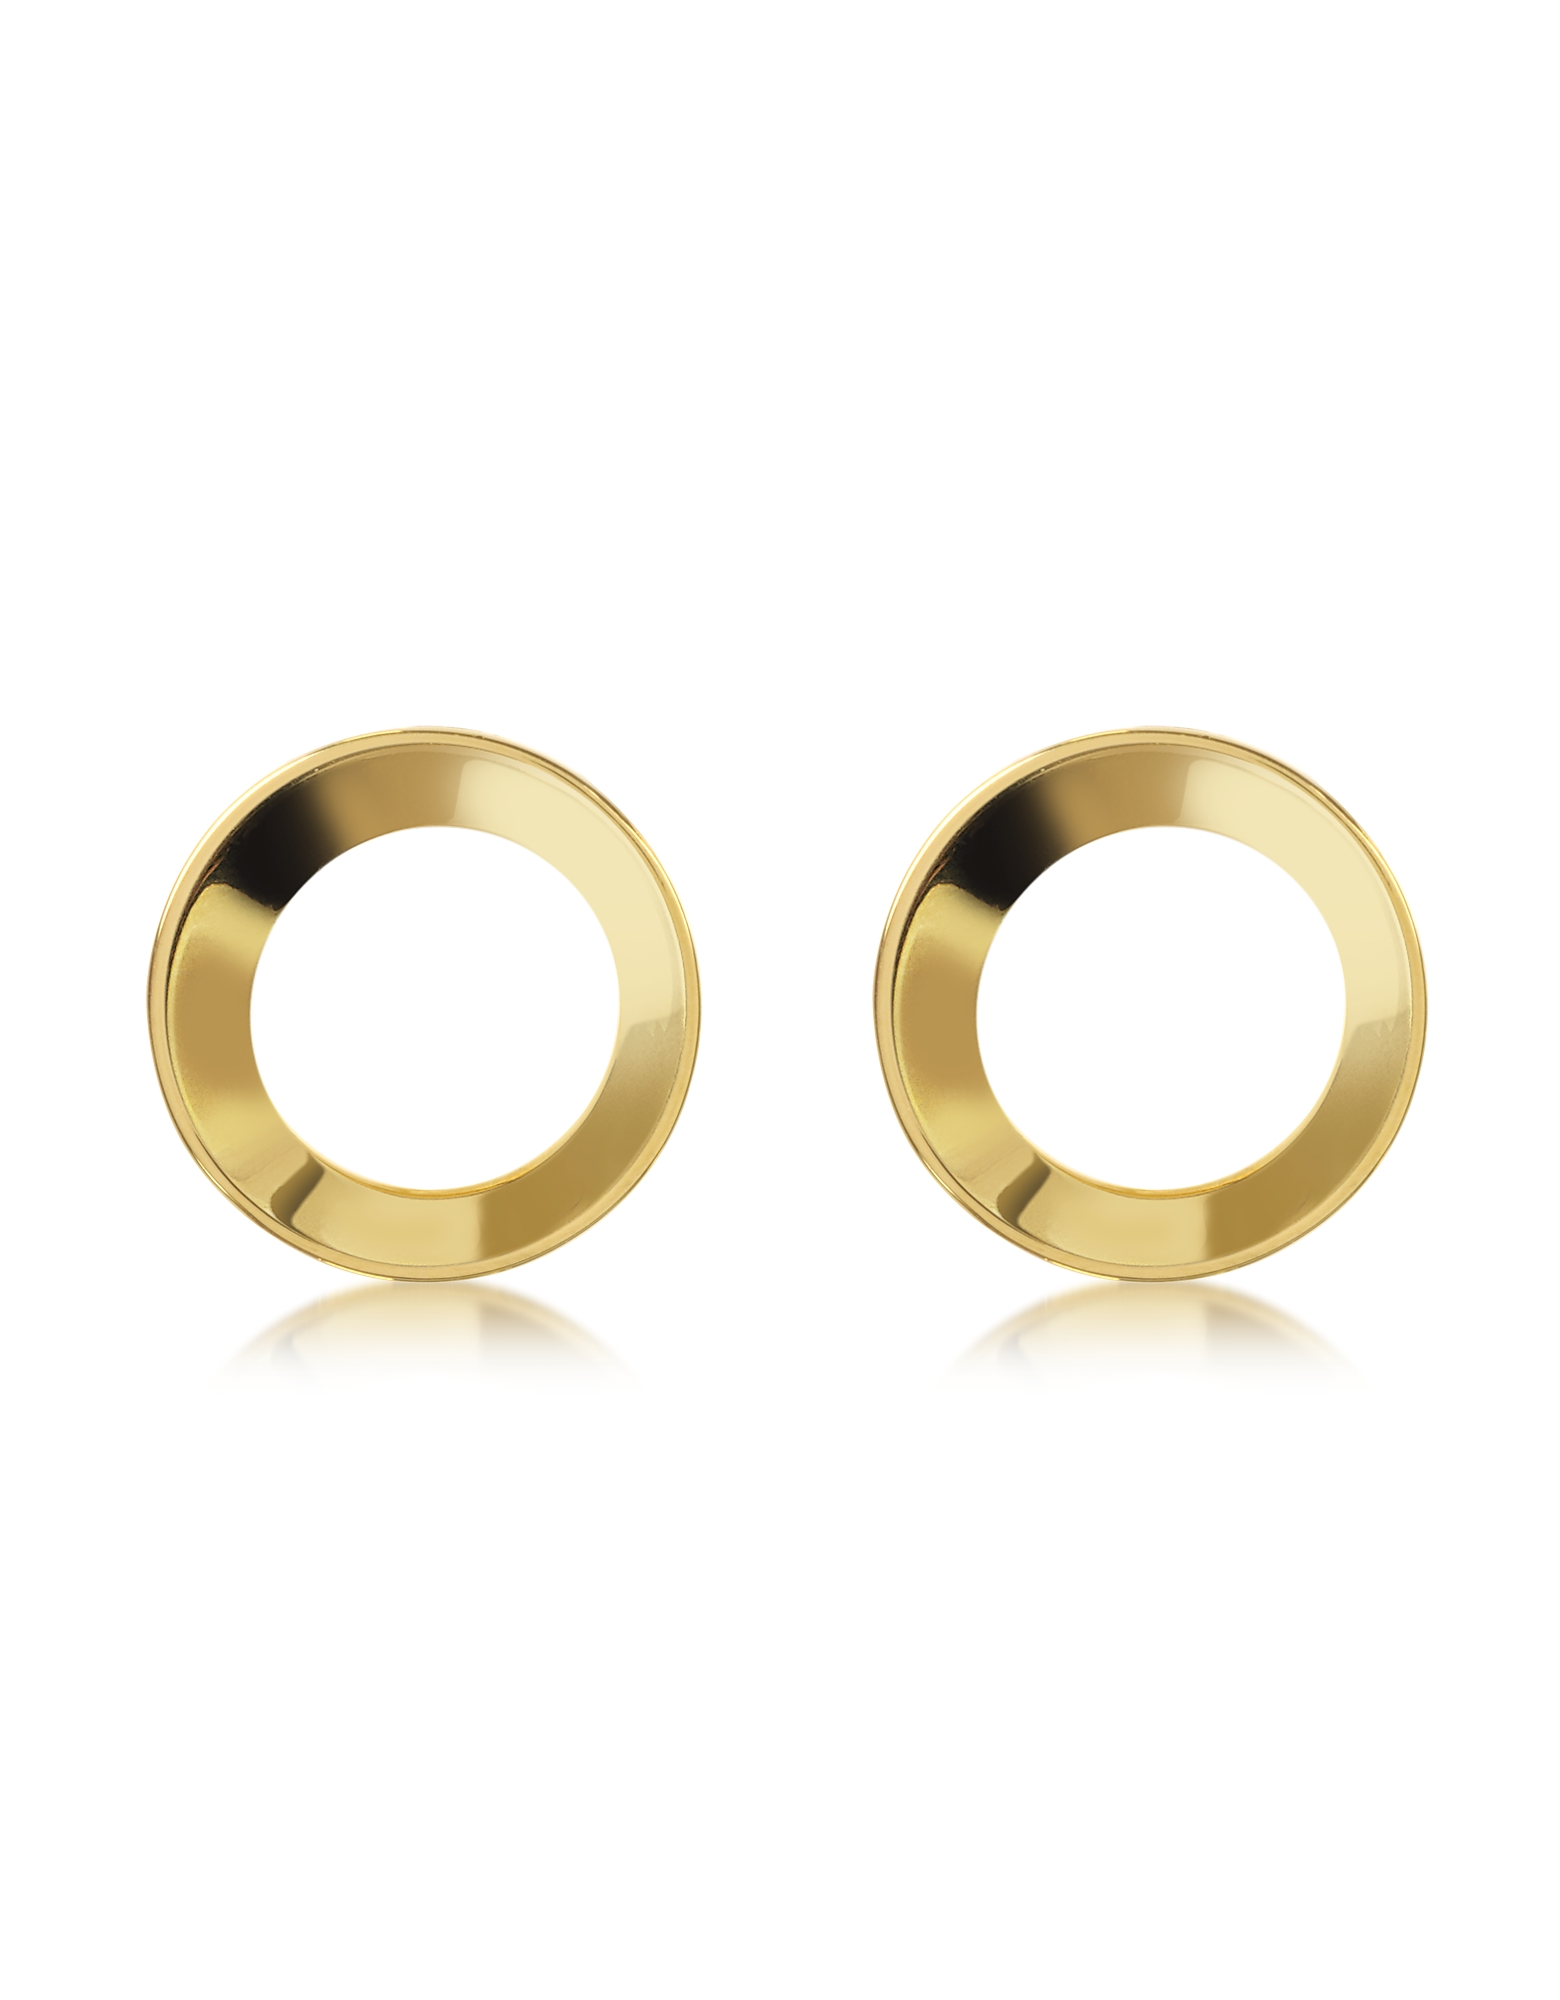 Vita Fede Earrings, Mini Cosimo Gold Tone Earrings